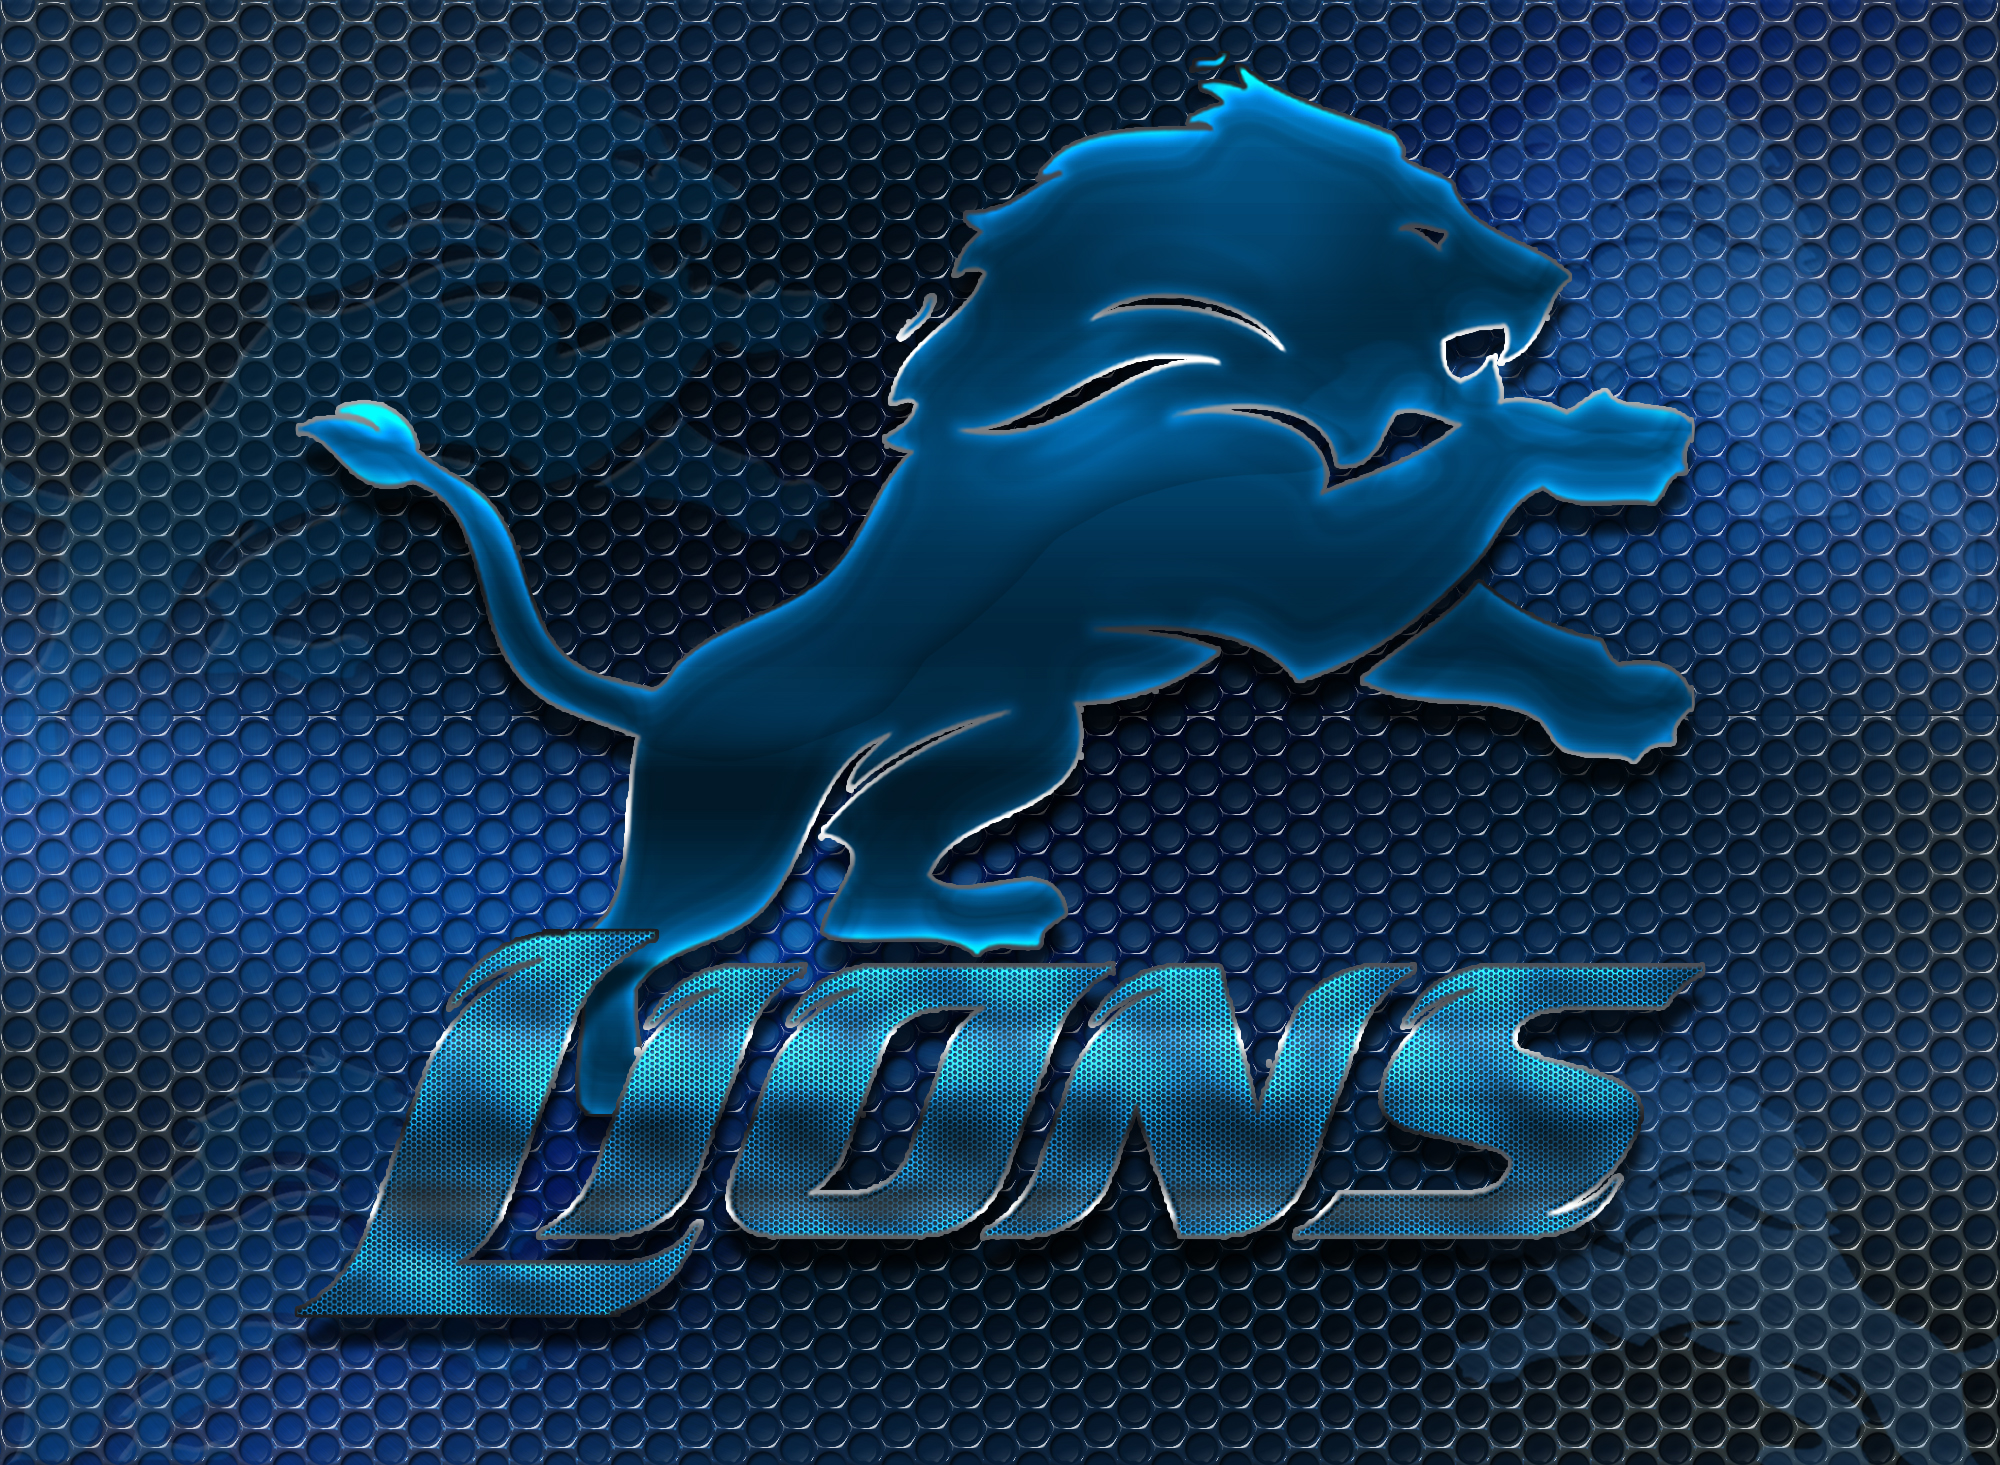 Wallpapers By Wicked Shadows Detroit Lions 2012 Heavy Metal Wallpaper 2000x1465